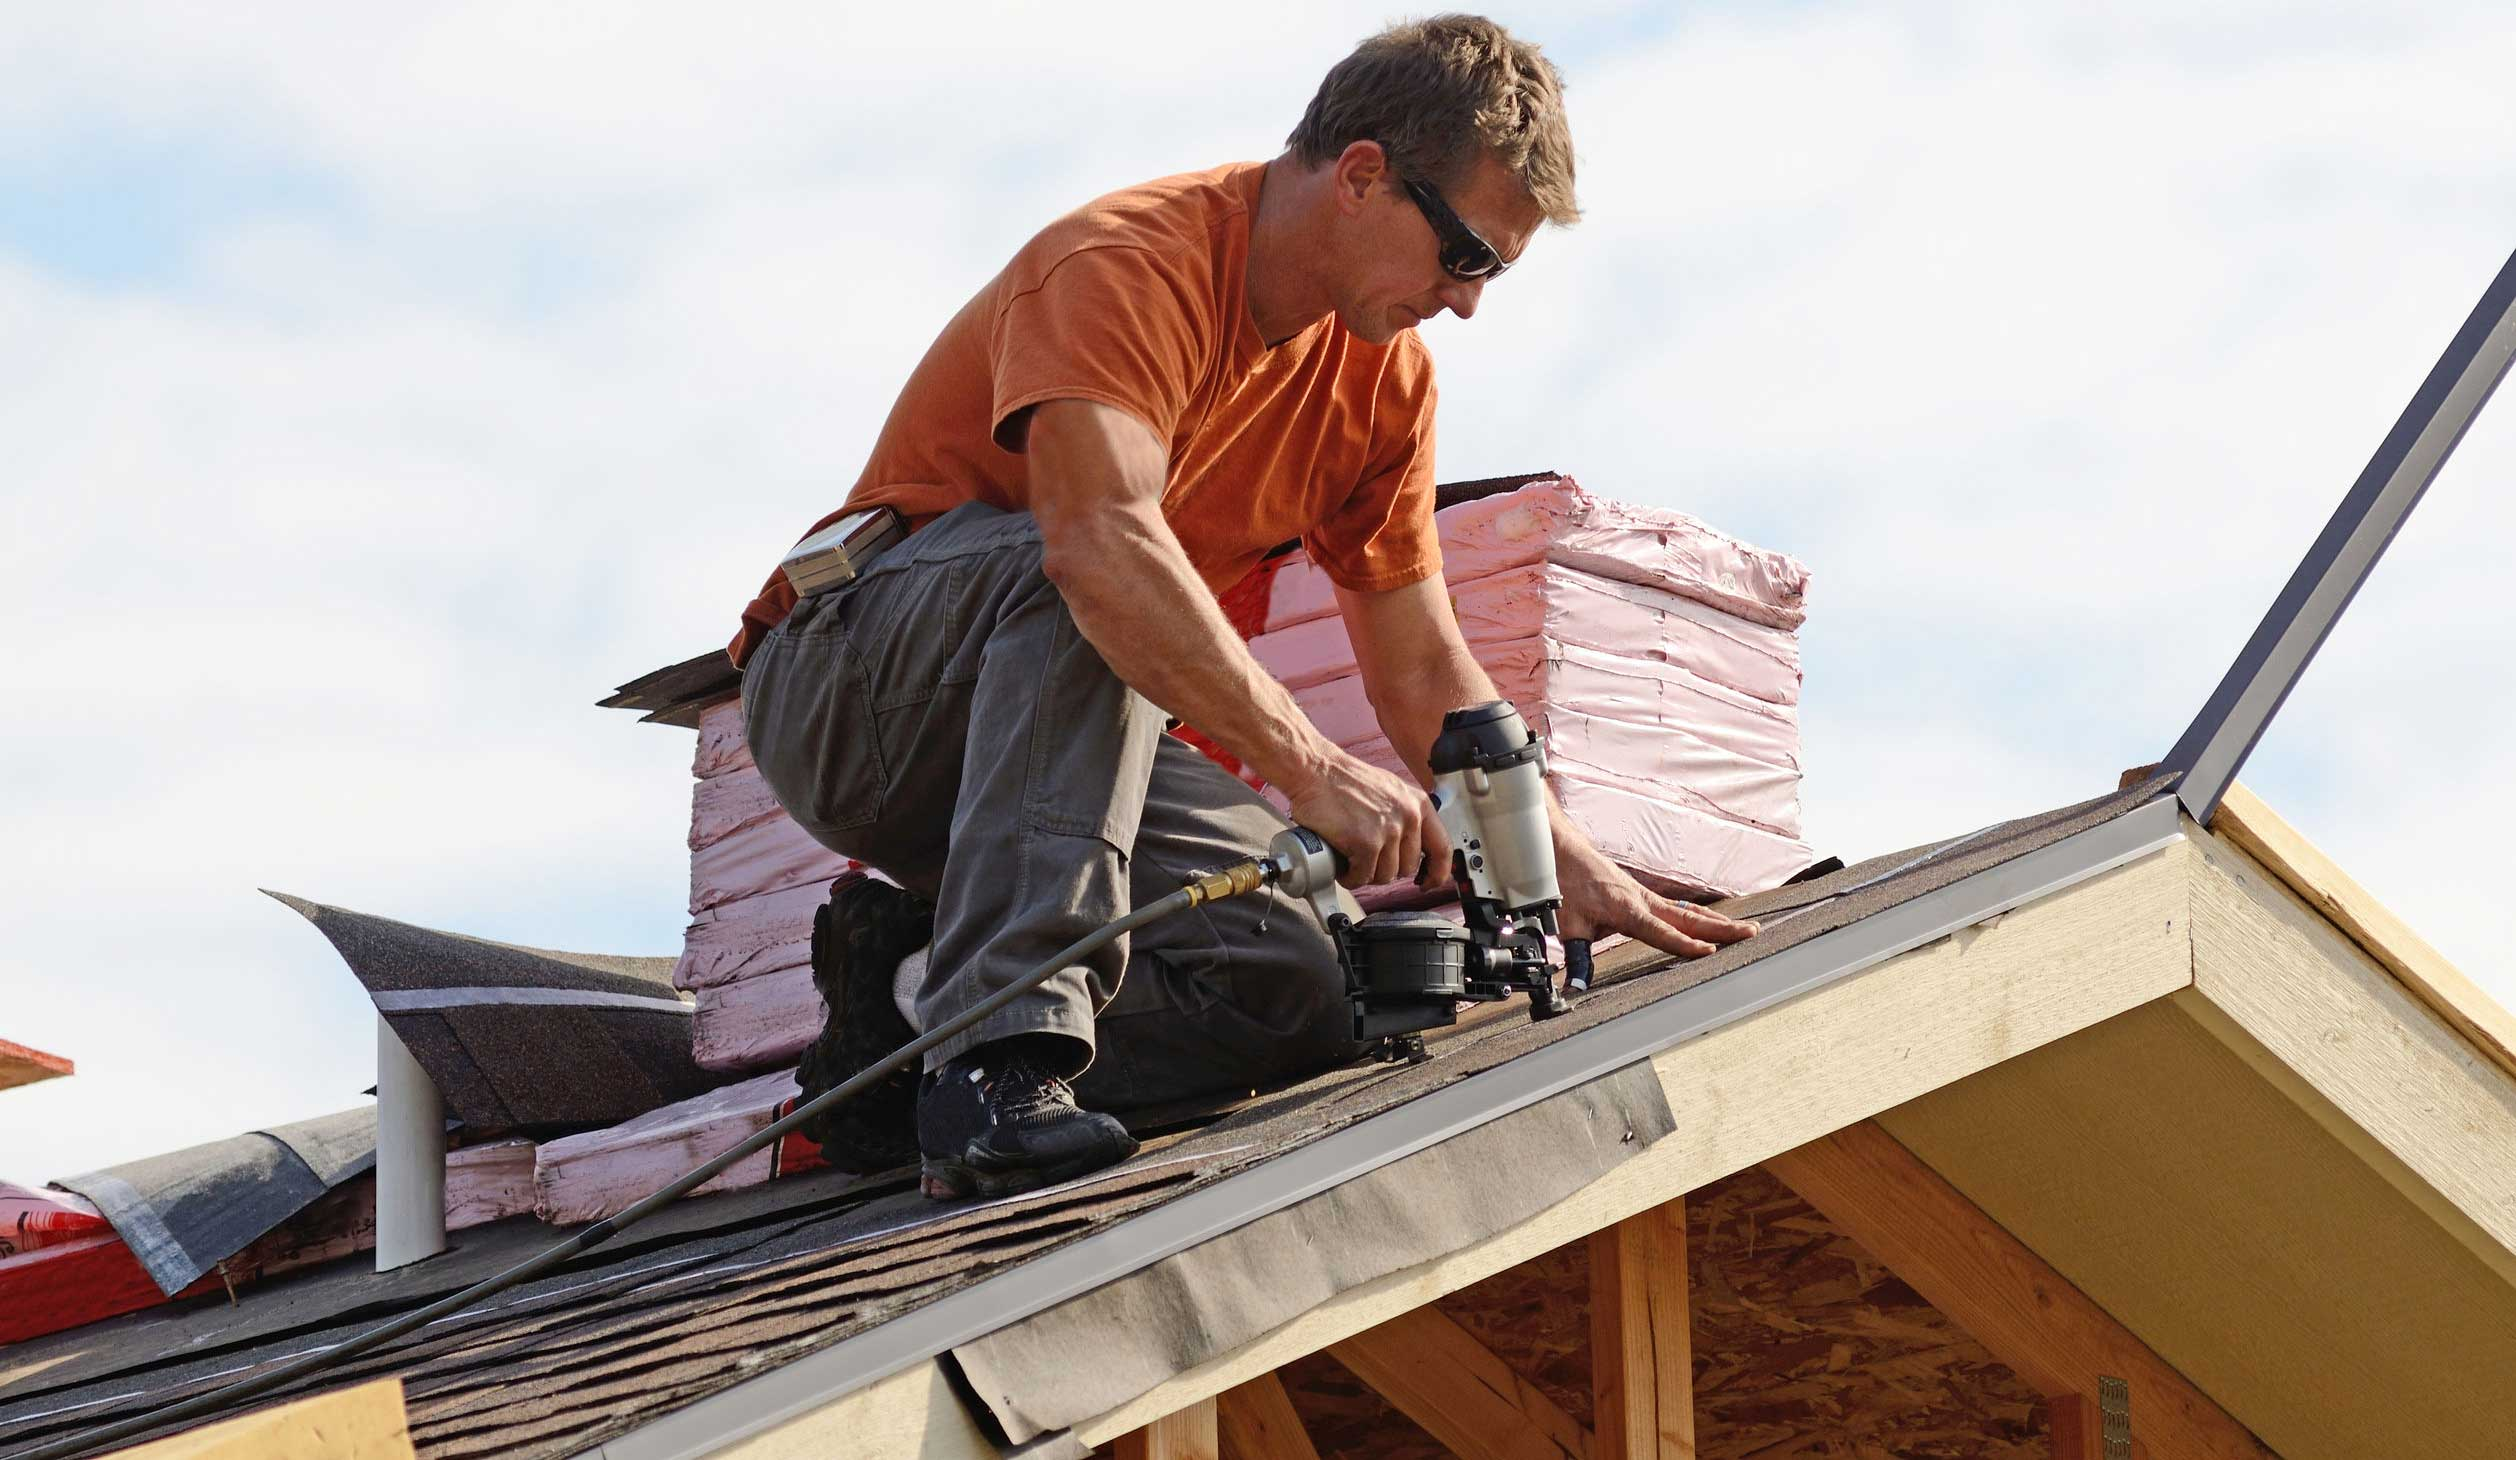 a roofer from michael bange roofing fixing a roof in pembroke pines